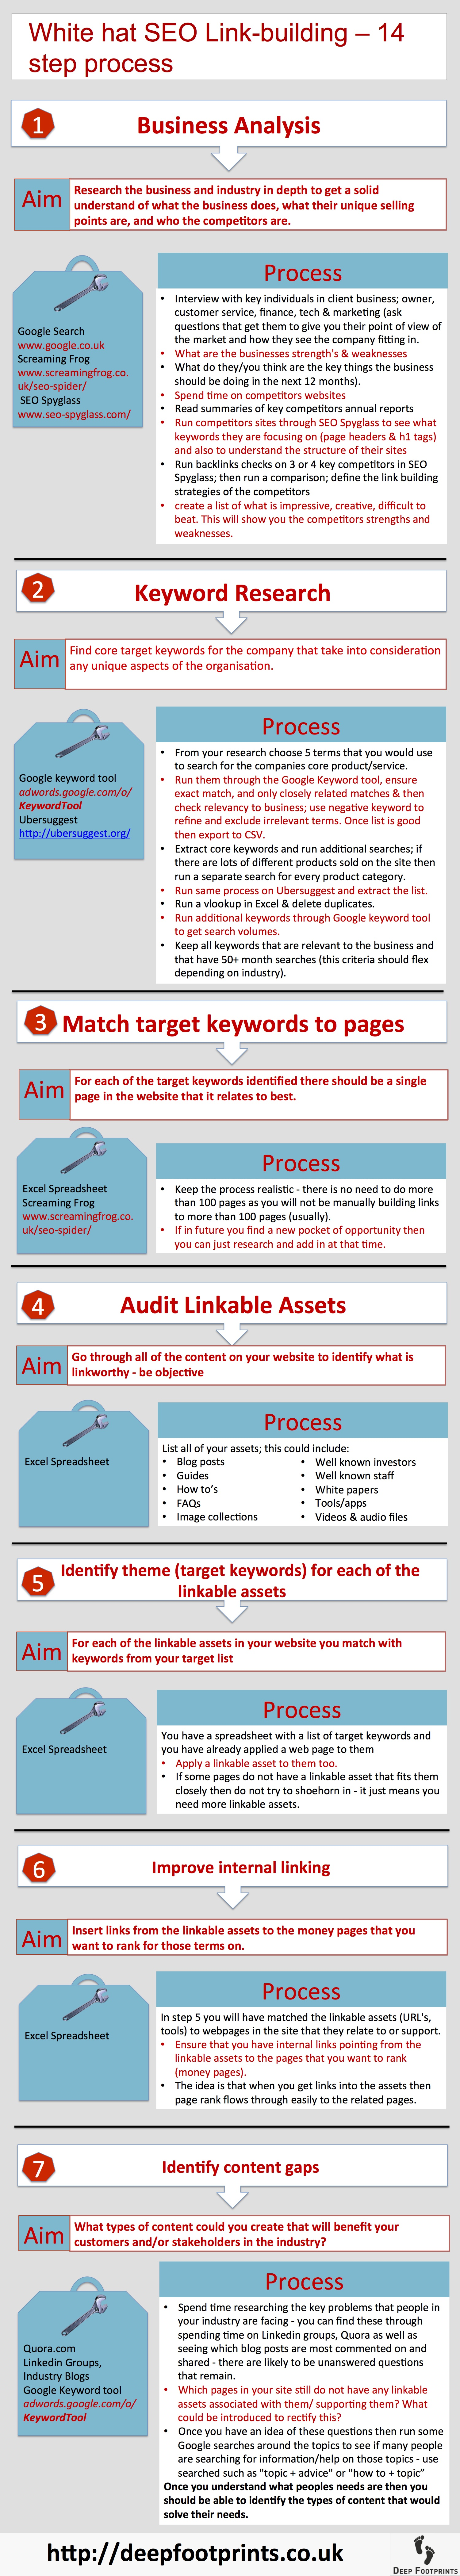 SEO linkbuilding 14 step guide part 1